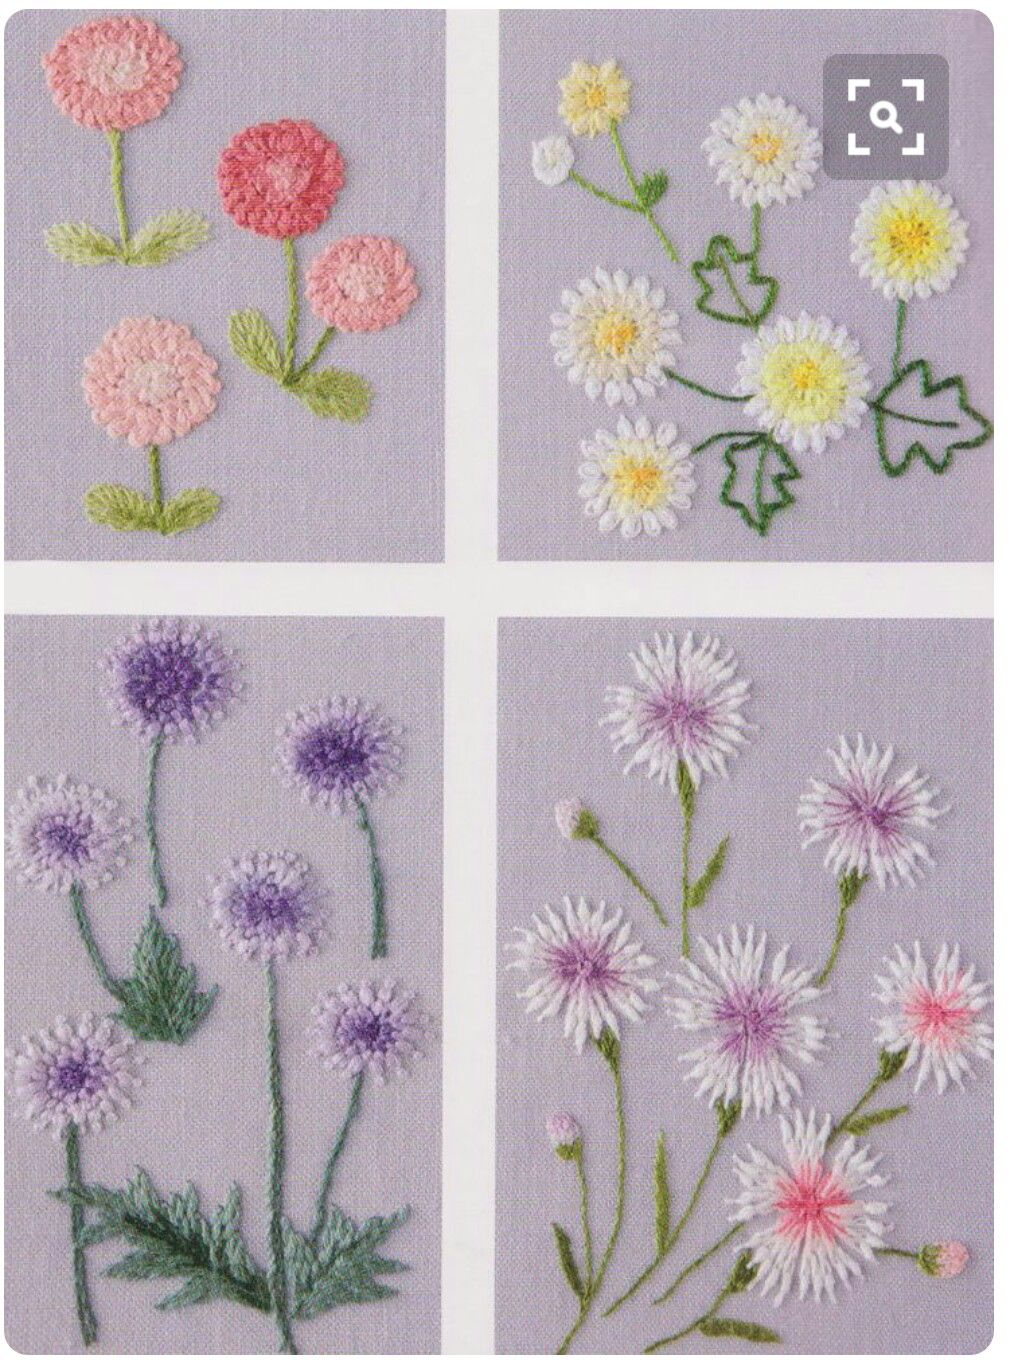 Pin by glten sargl on pli oyalar pinterest flower in my garden hand embroidery stitch sewing applique patchwork quilt pdf e patterns jeuxipadfo Choice Image